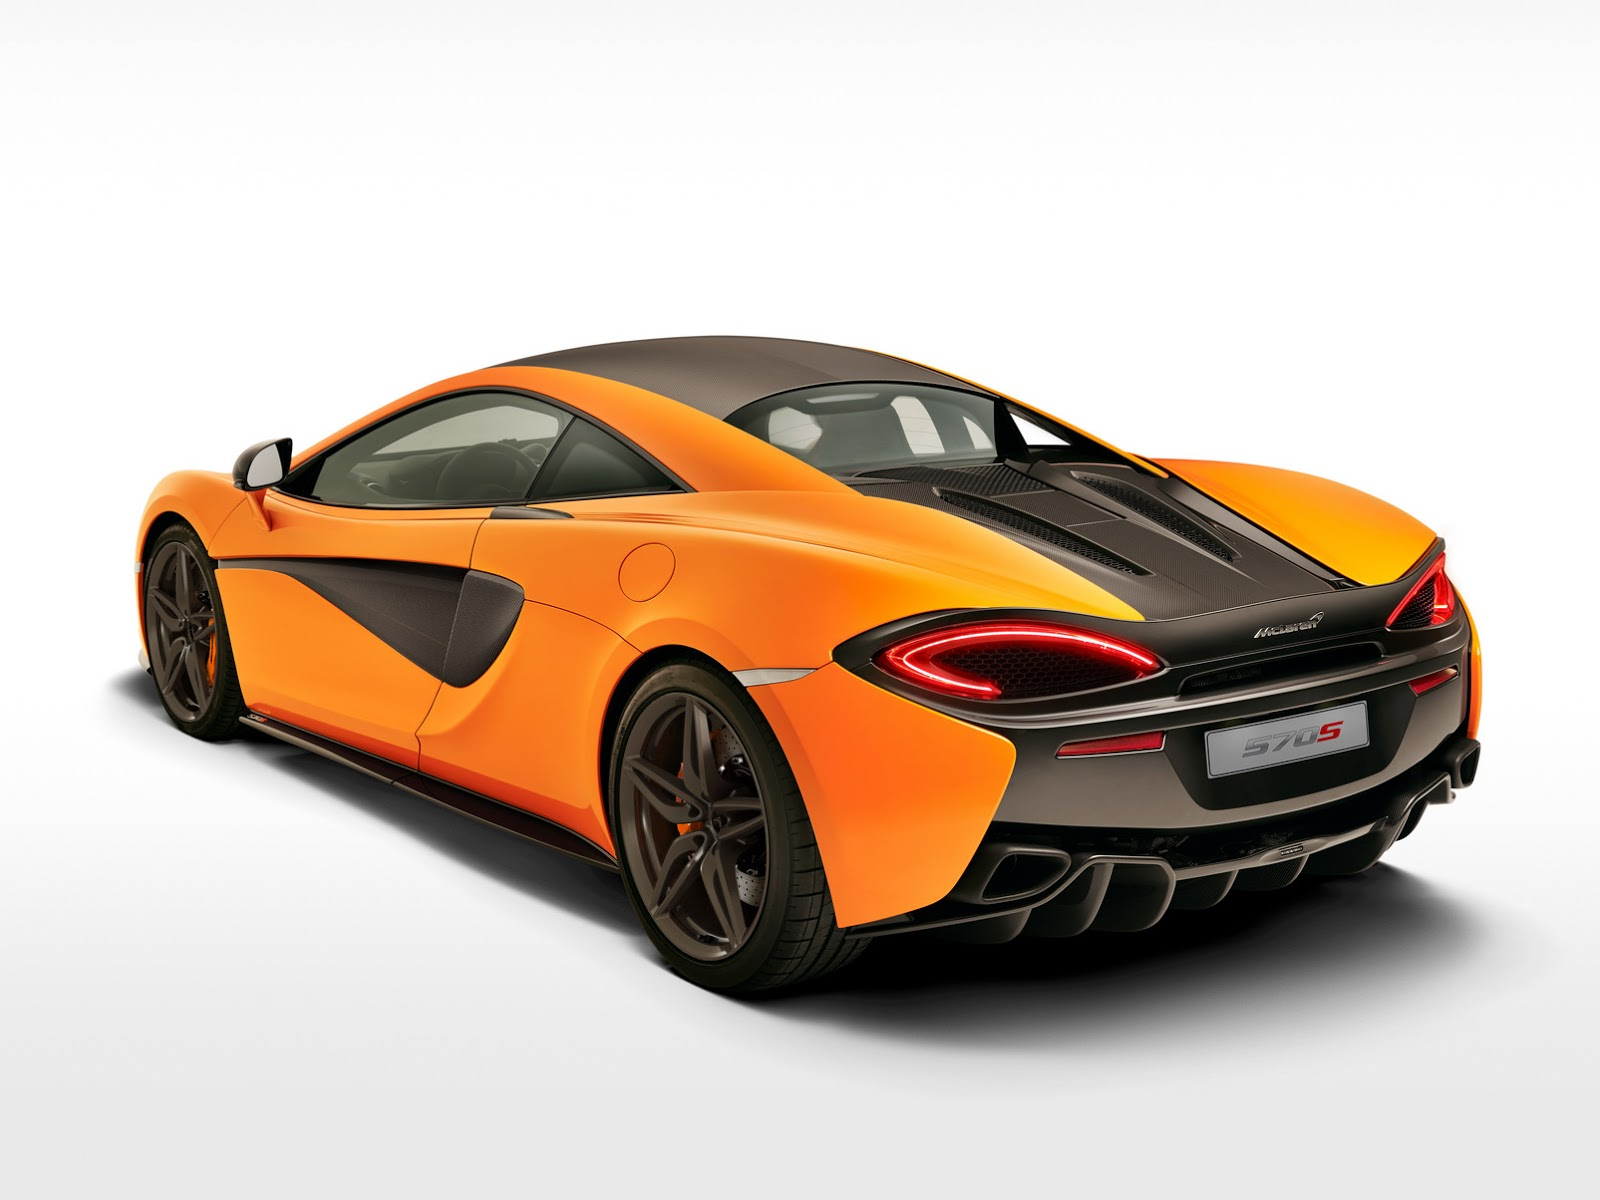 New McLaren 570S: This Is It, Has 570PS And Does 0-62MPH